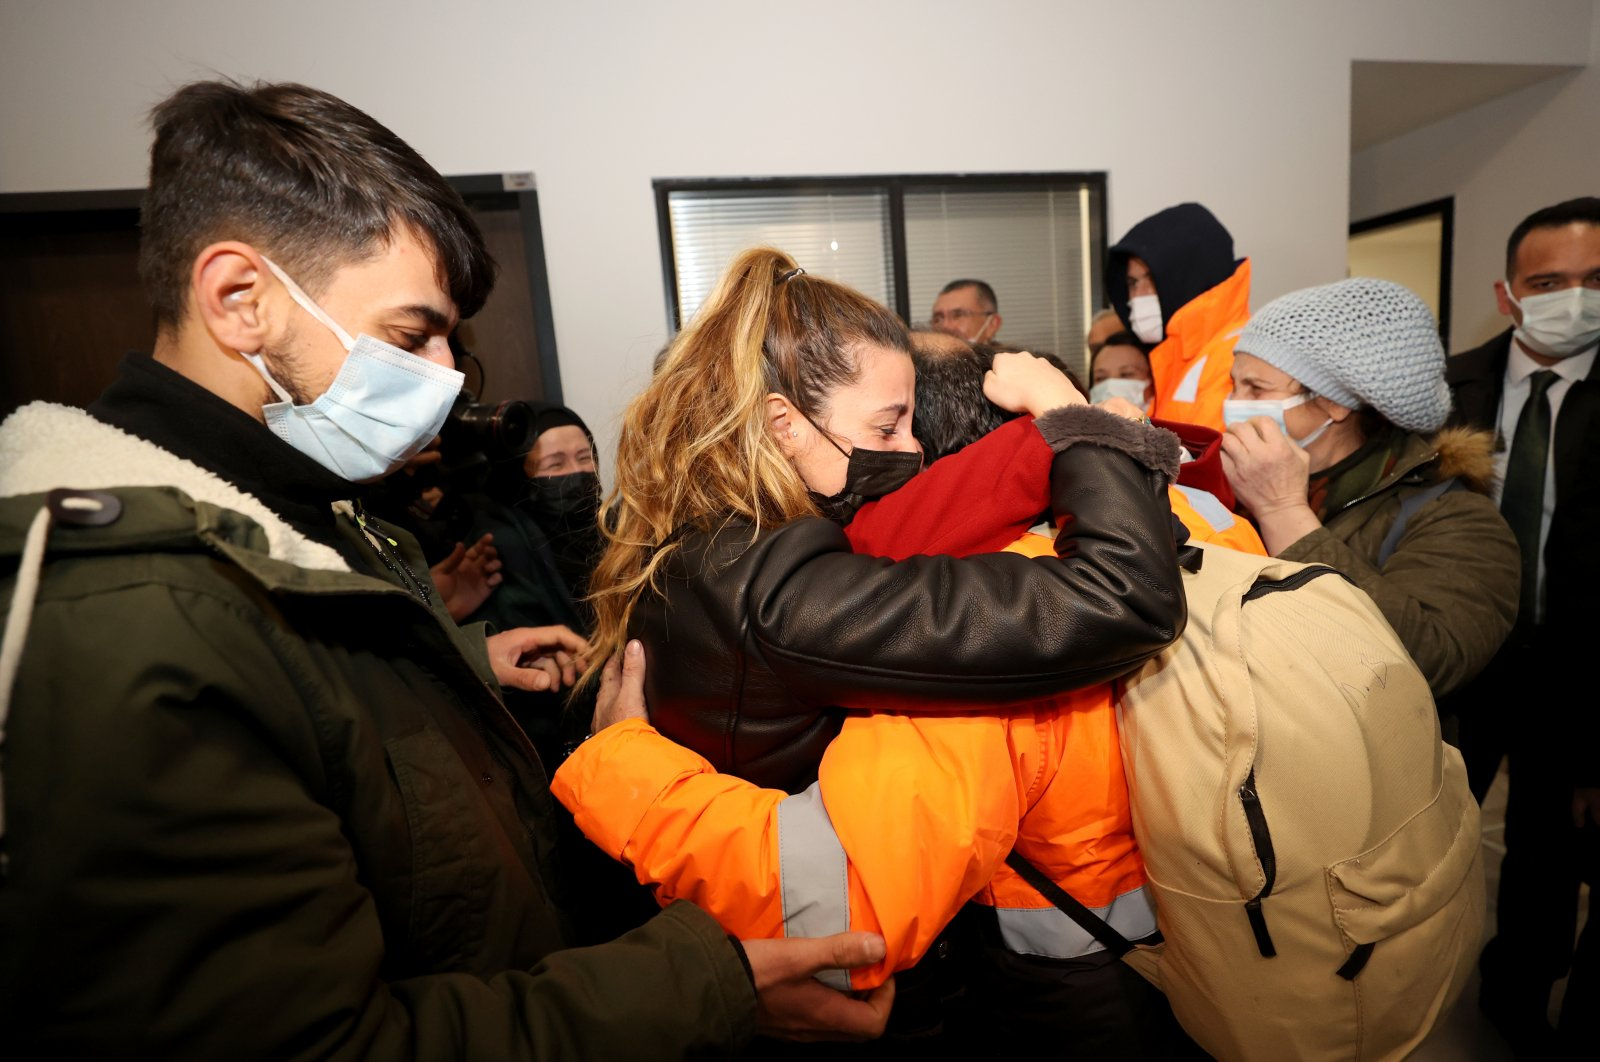 The rescued sailors reunite with their relatives at Istanbul Airport upon arrival in Turkey on Feb. 14, 2021. (AA Photo)